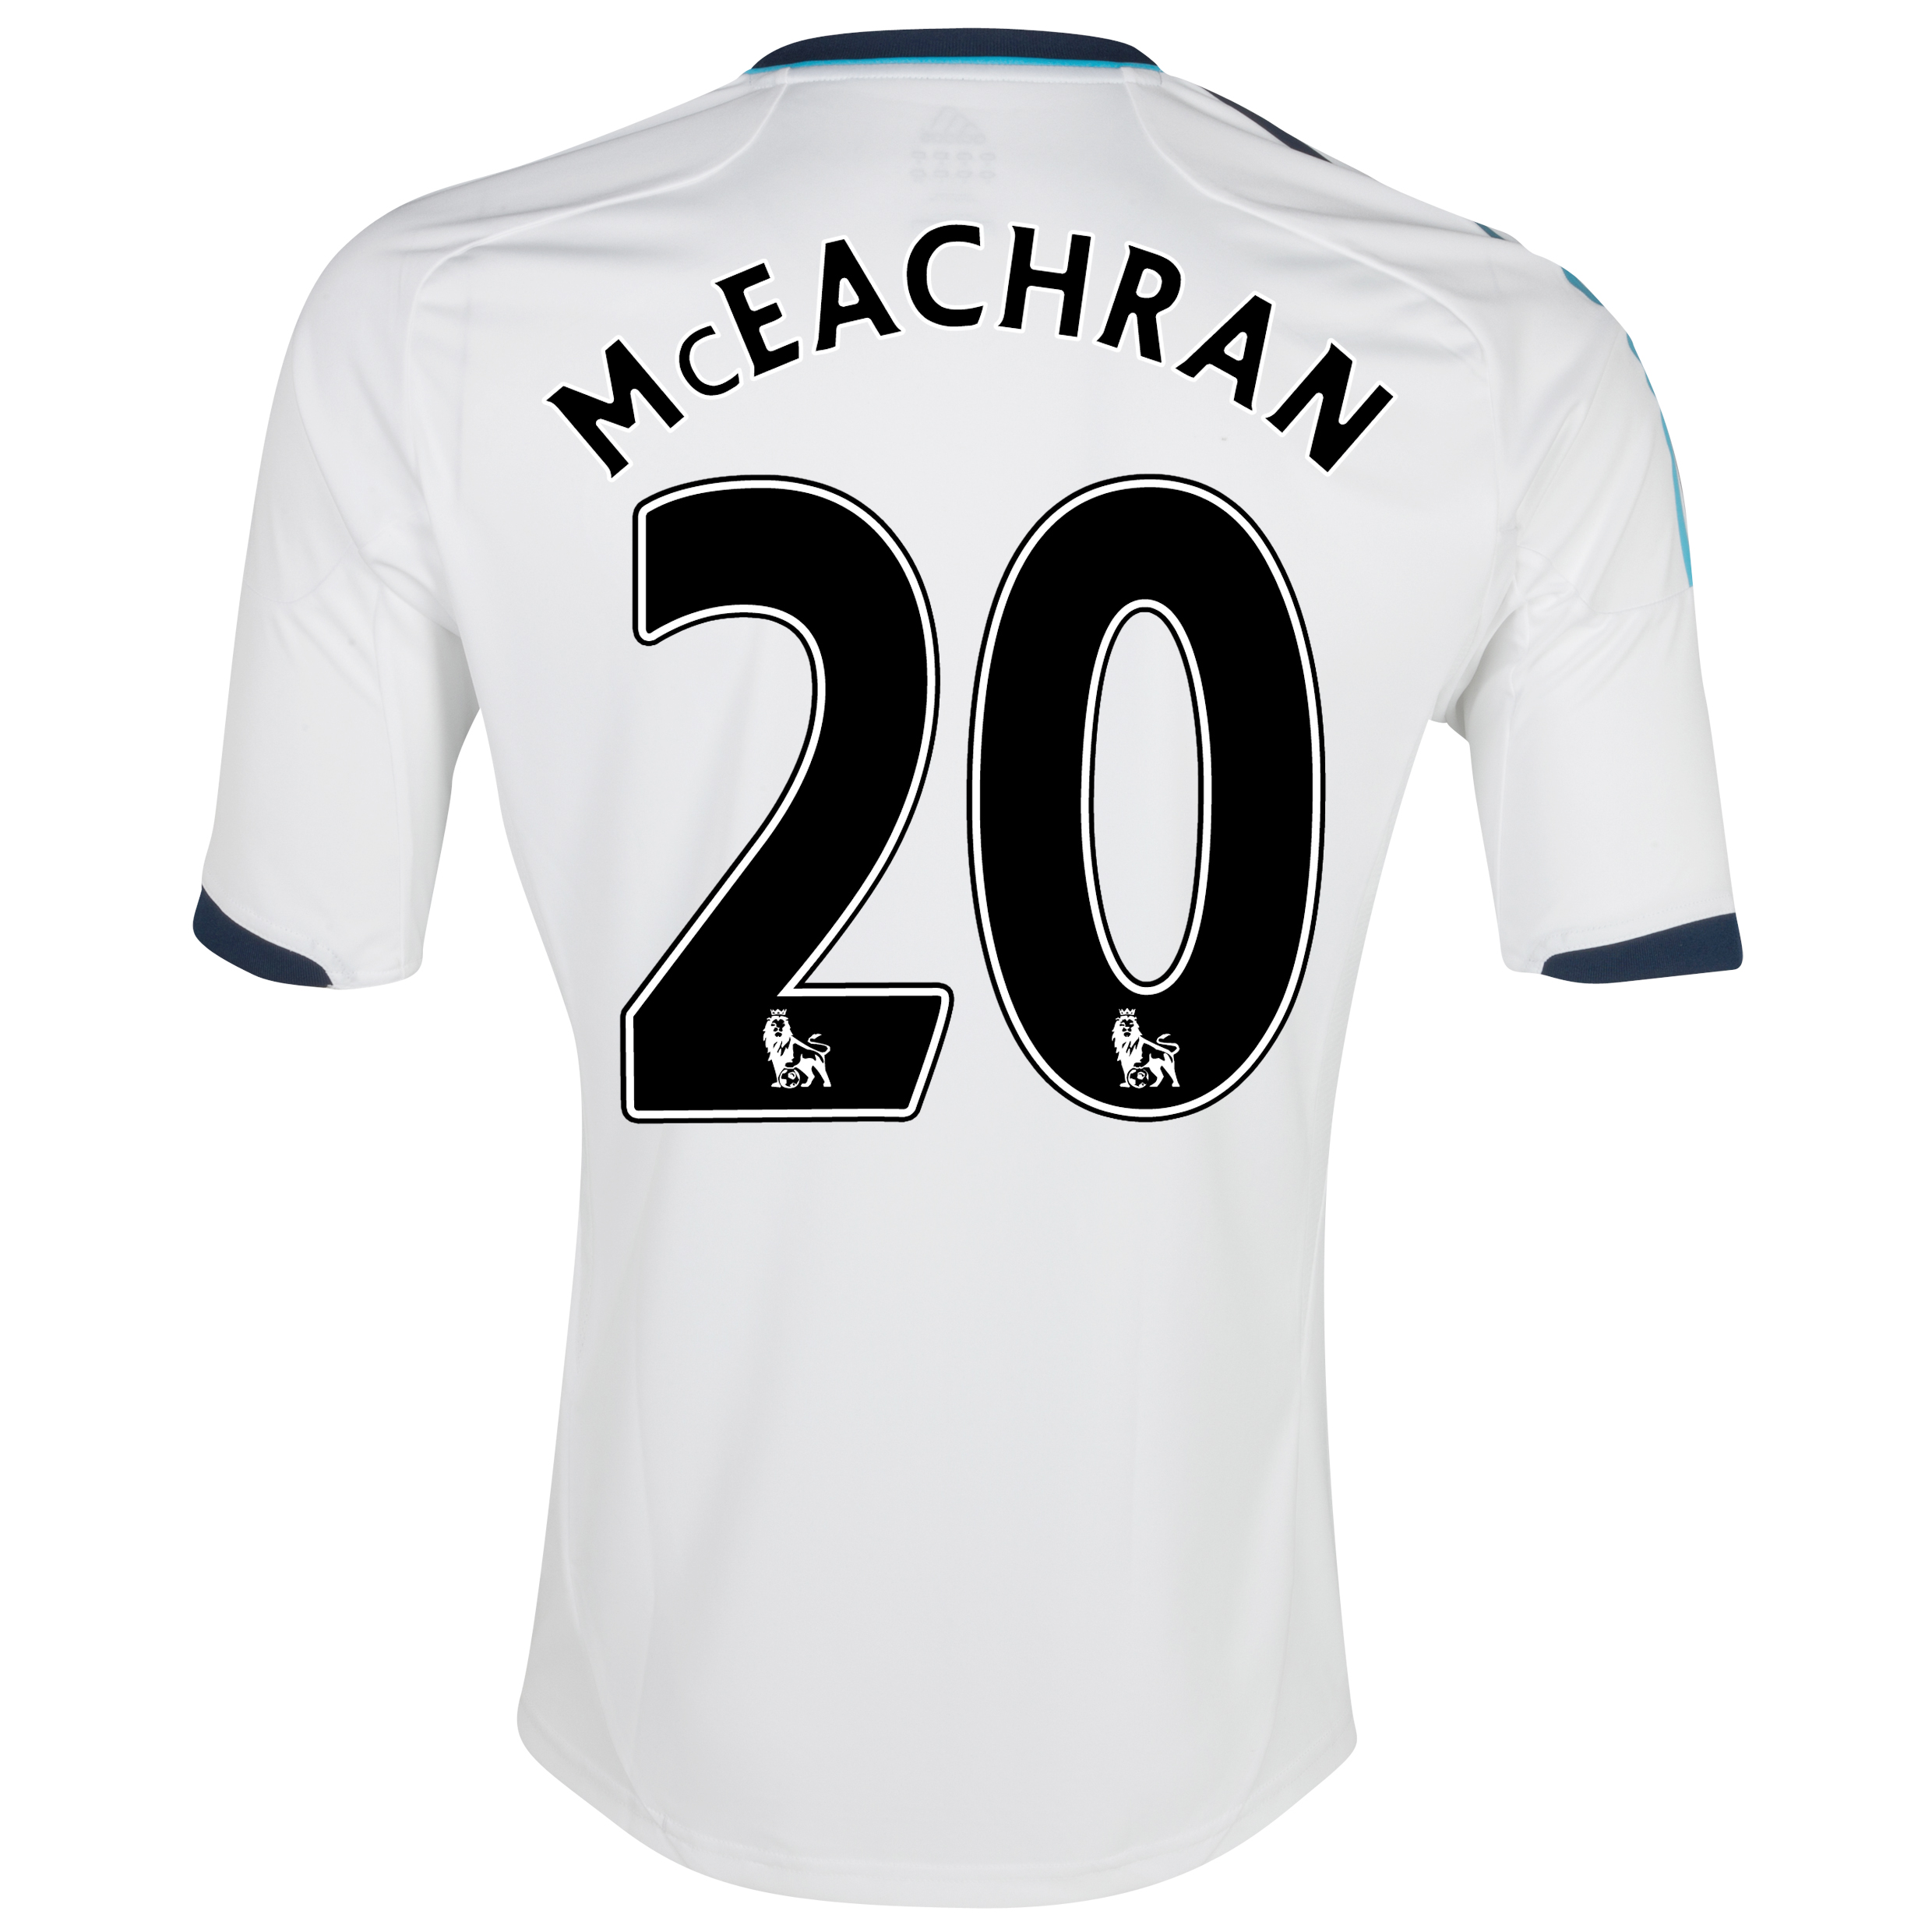 Chelsea Away Shirt 2012/13 with McEachran 20 printing